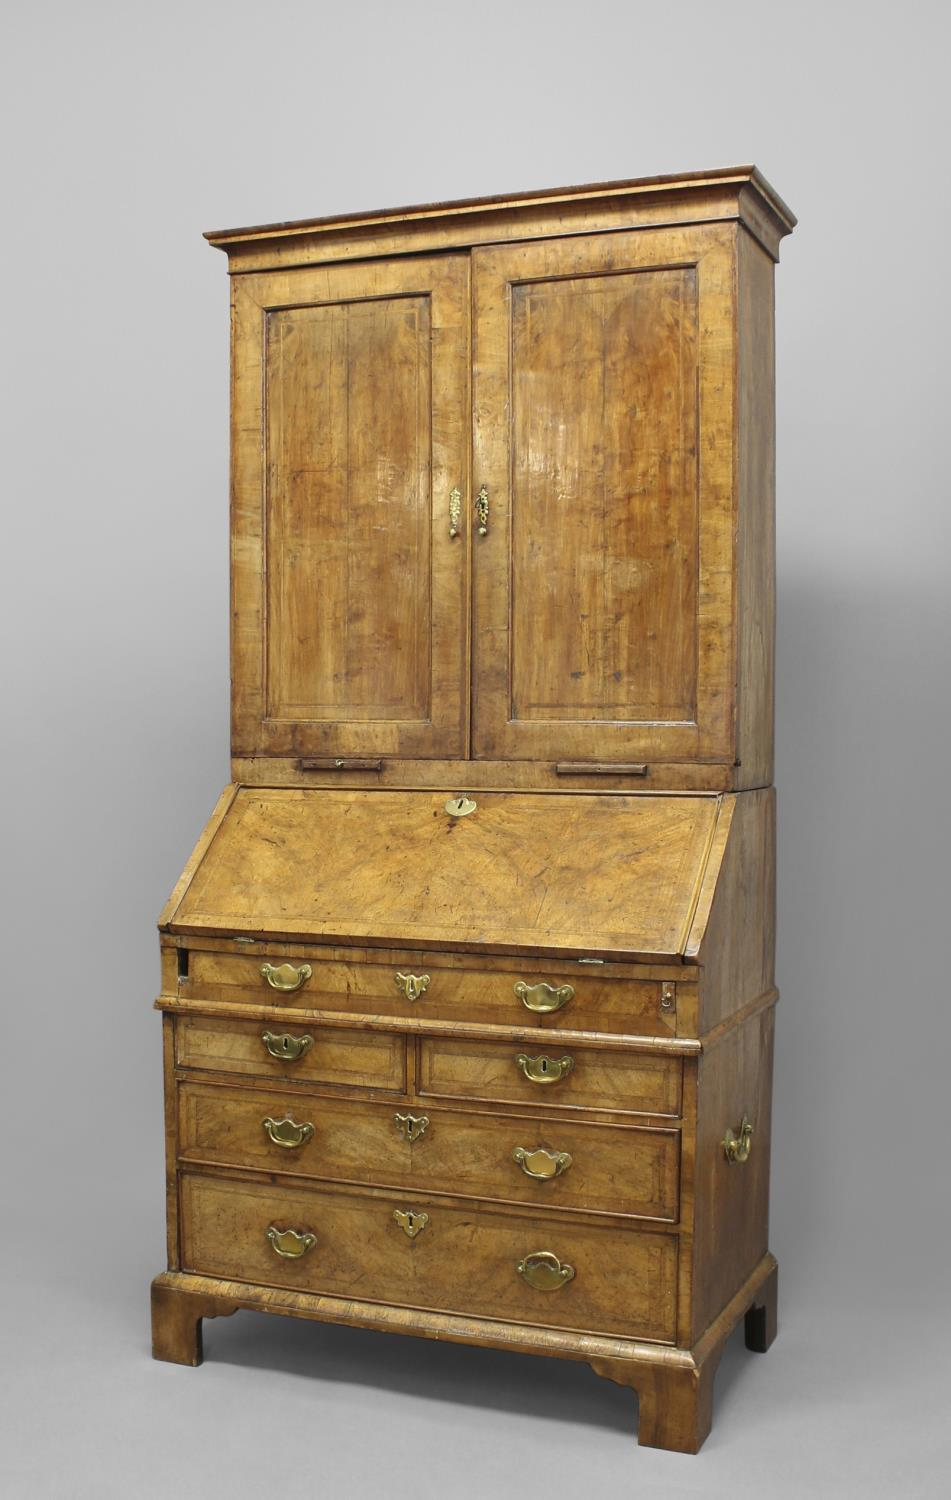 A GEORGE I WALNUT BUREAU CABINET. The upper section with a moulded cornice above twin panelled doors - Image 2 of 2